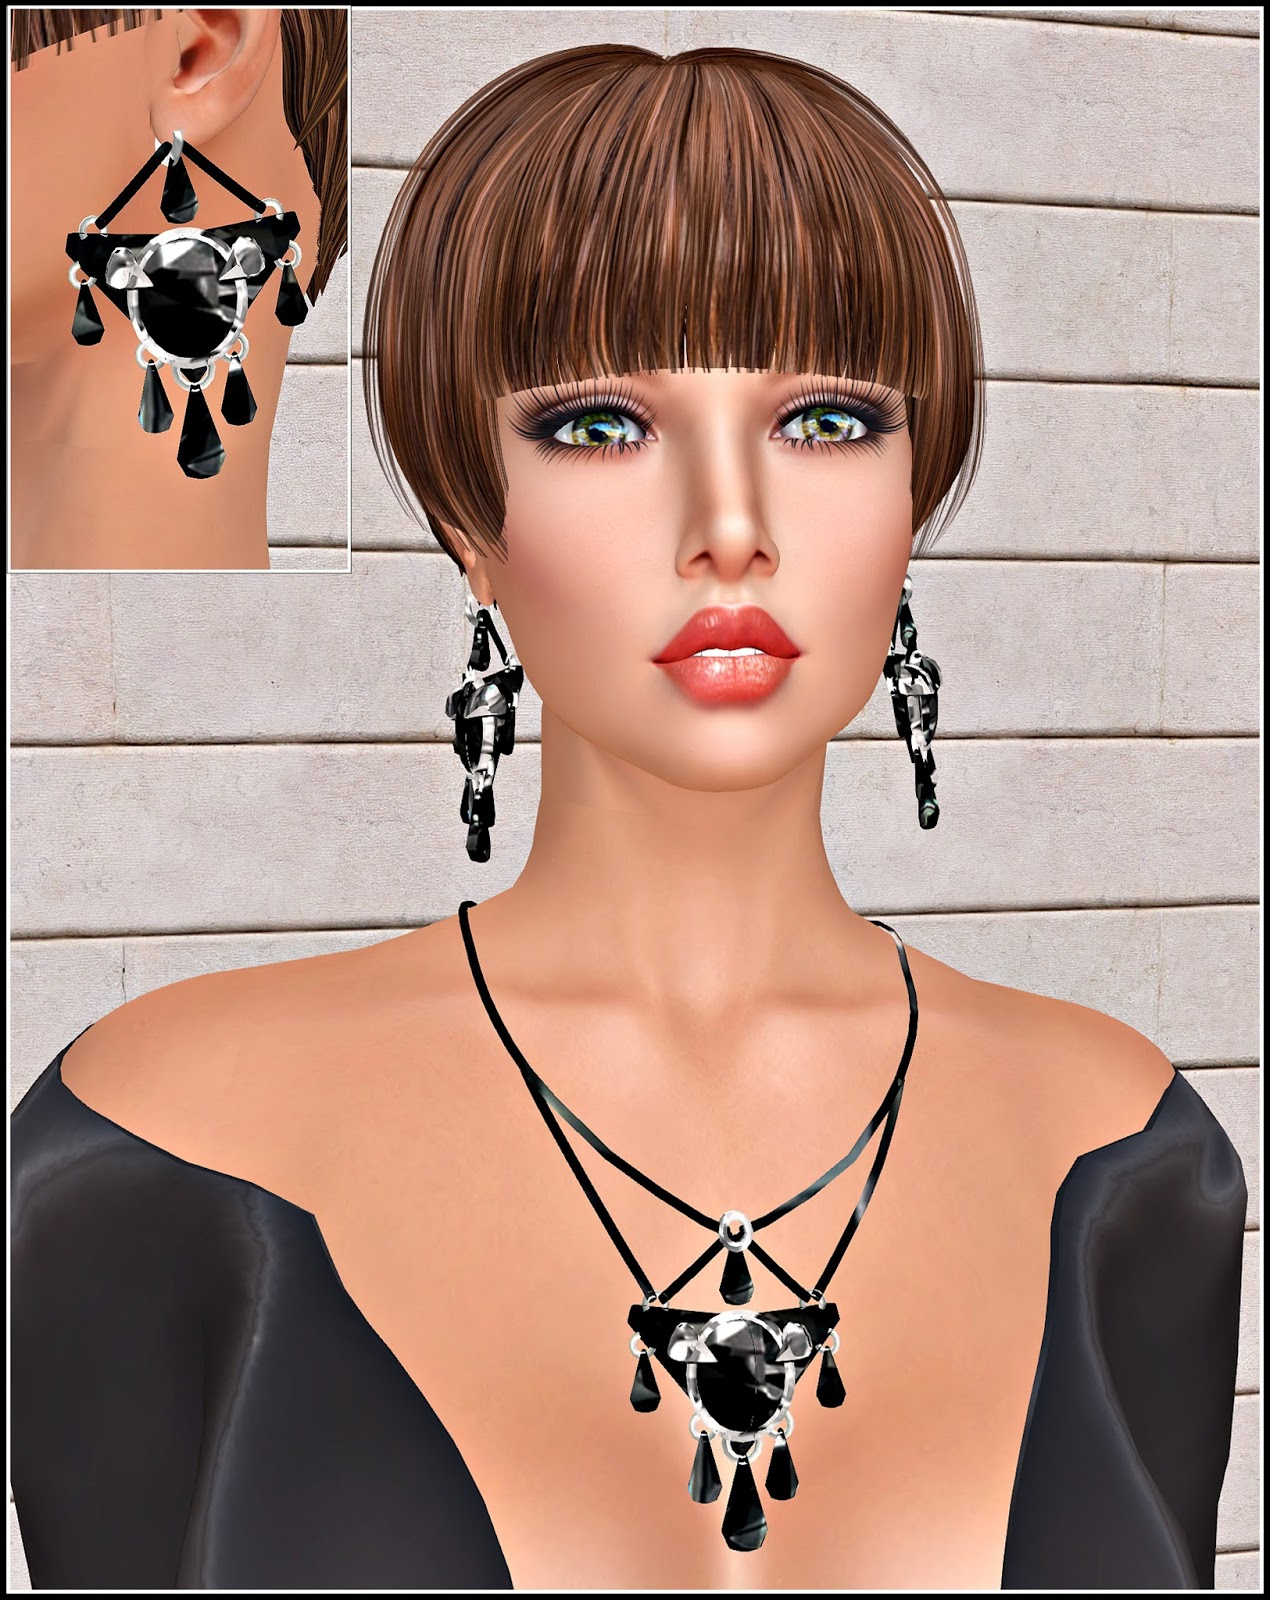 Lisana 39 s model life virtual diva couture ross event for Diva couture